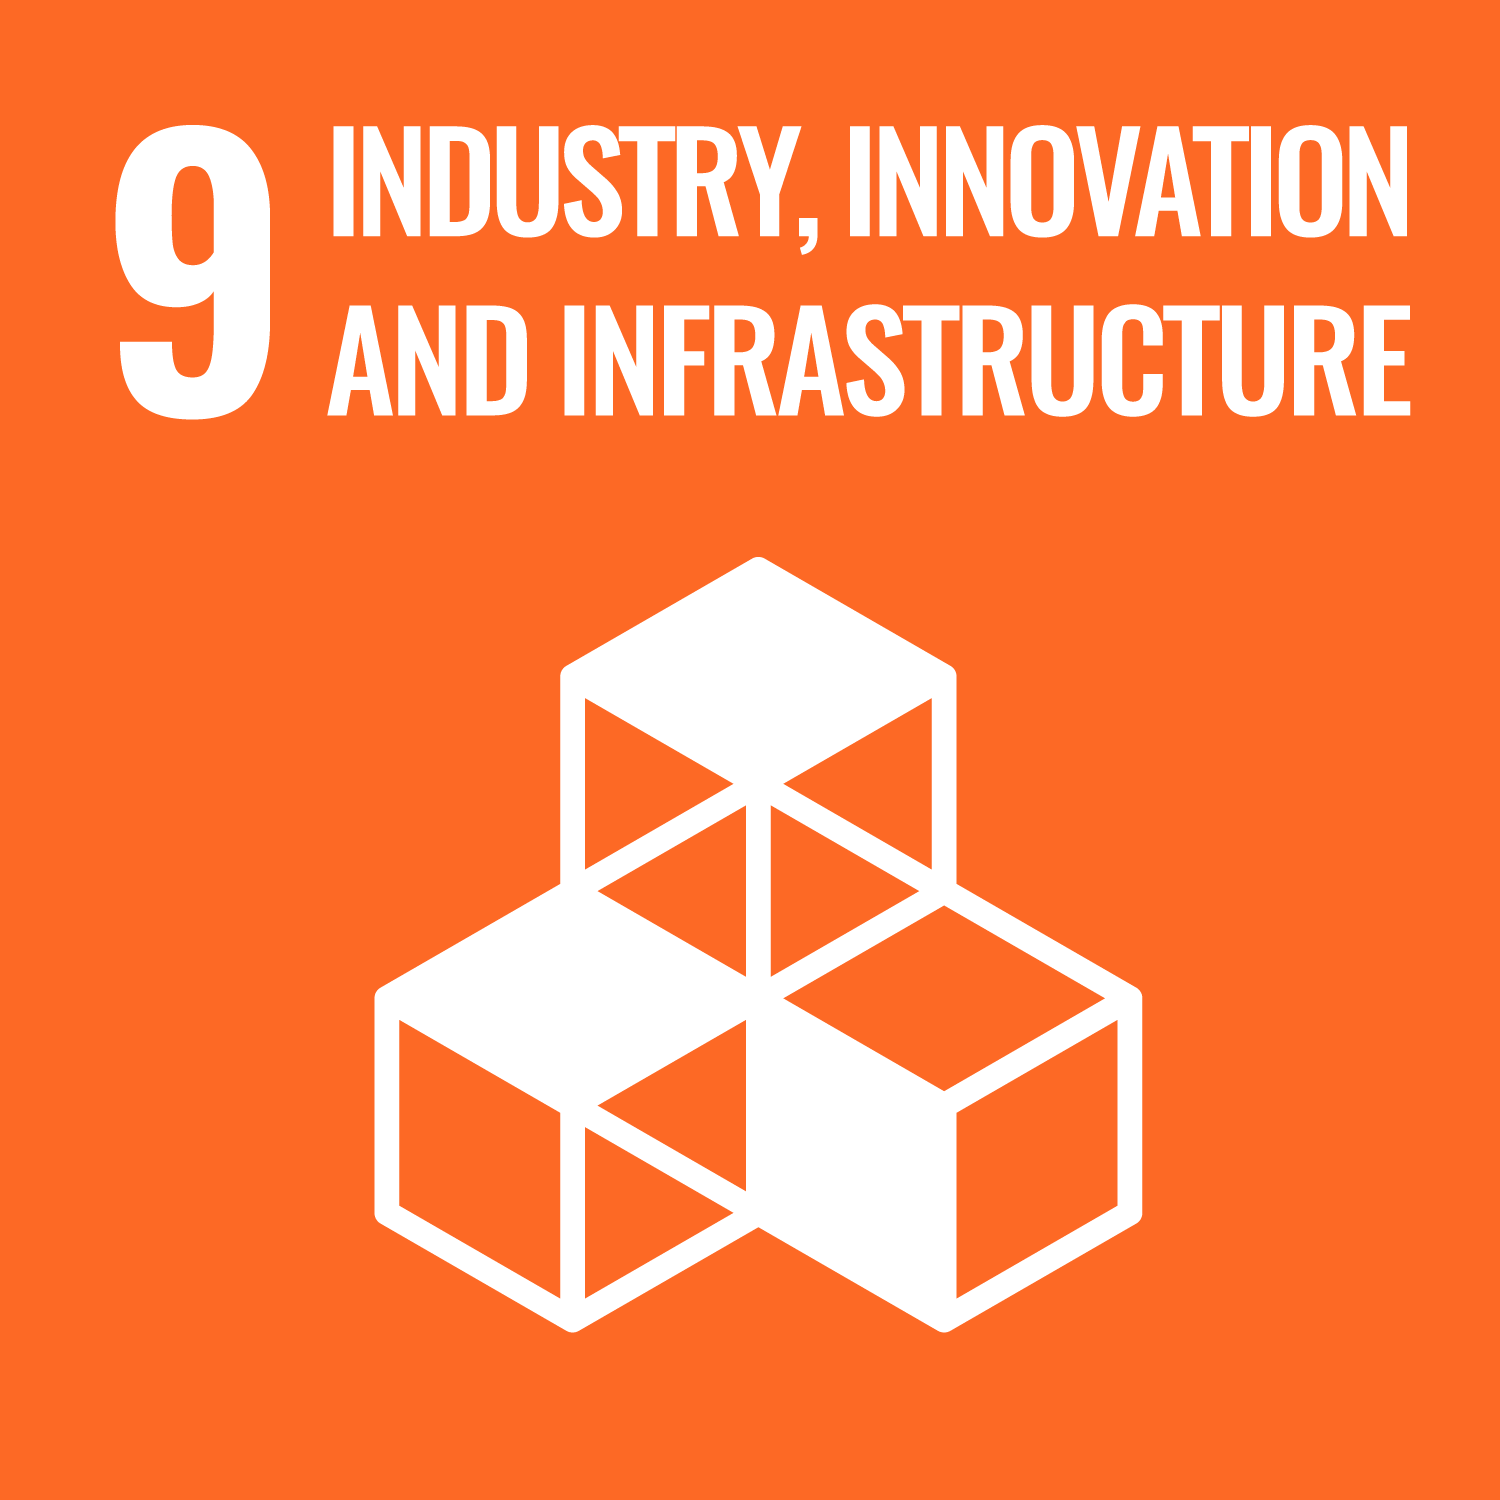 09. industry, innovation & infrastructure